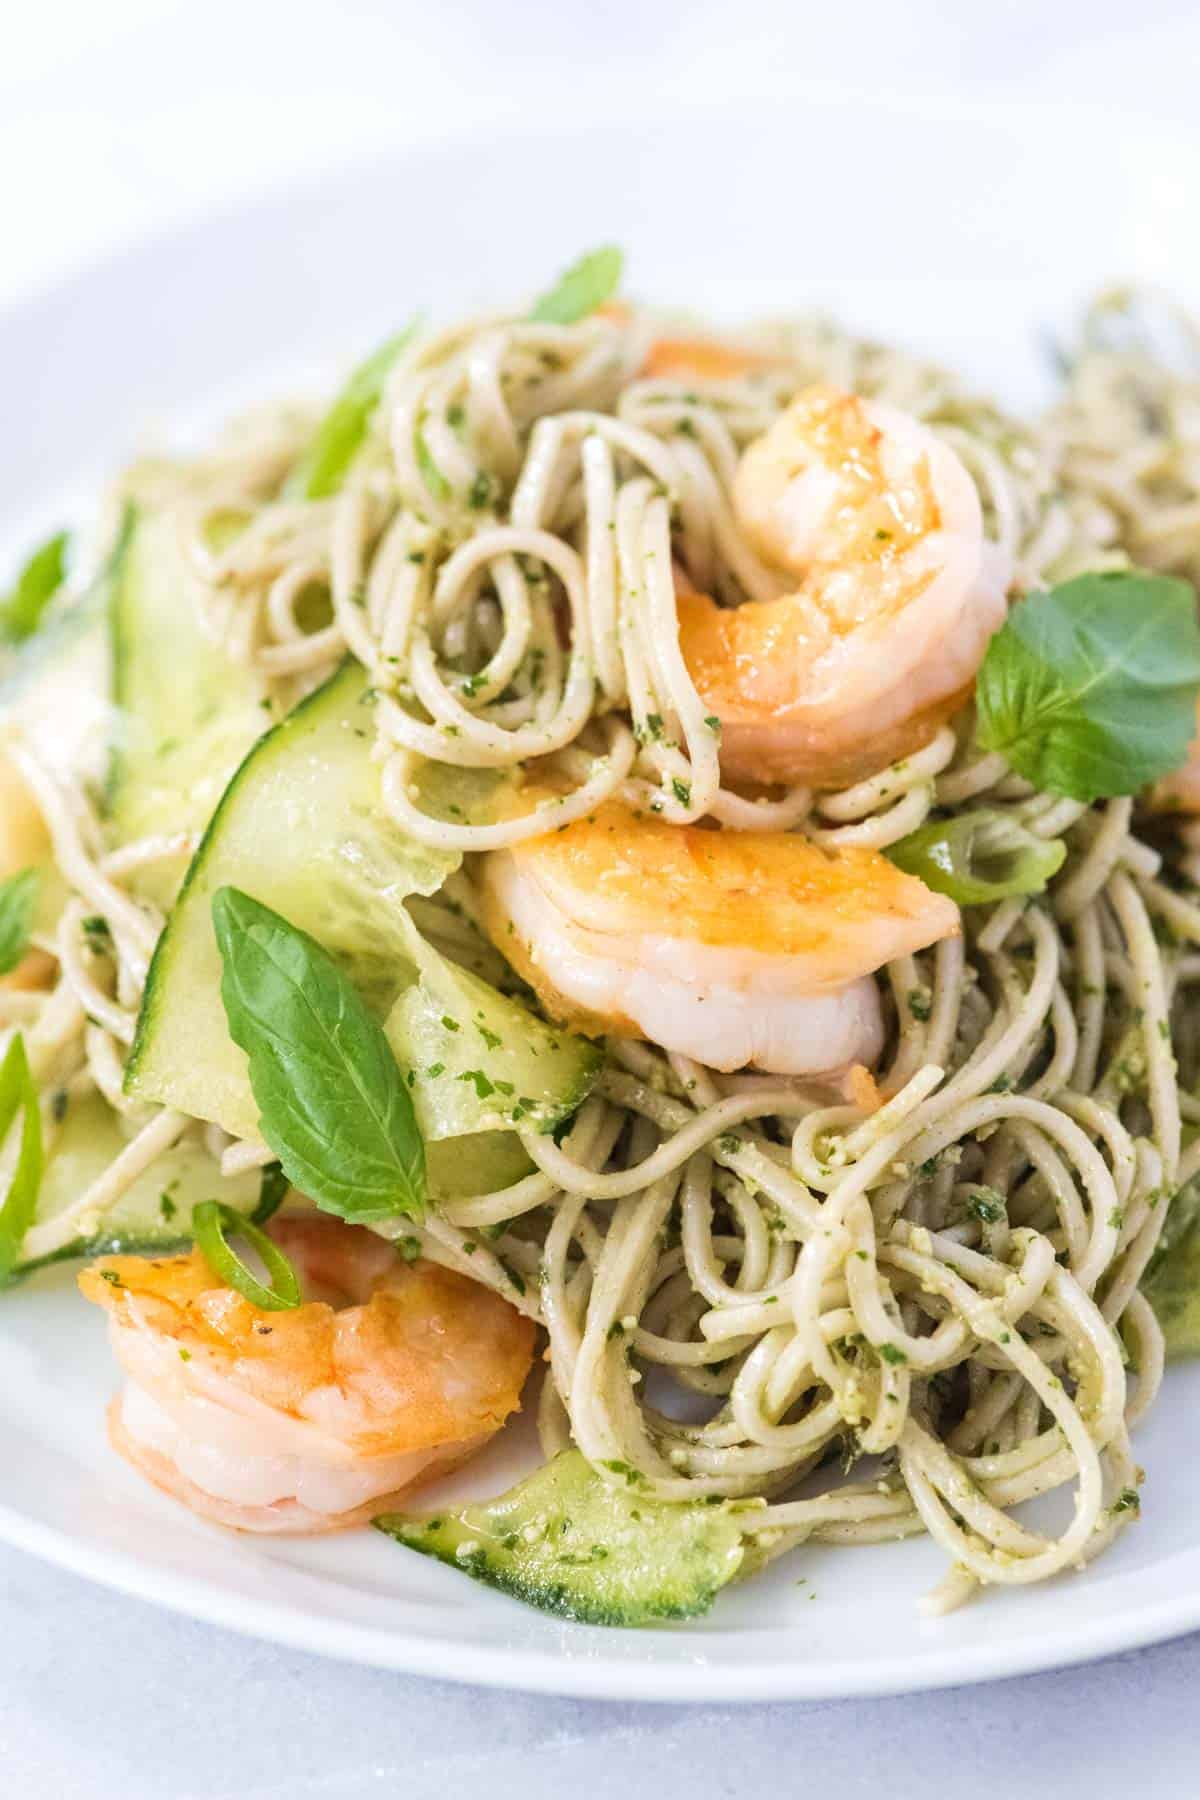 Ridiculously Good Shrimp Pesto Soba Noodles Recipe // You will love this quick and fresh soba noodles recipe with basil pesto, shrimp, and cucumber. Made in under 25 minutes!